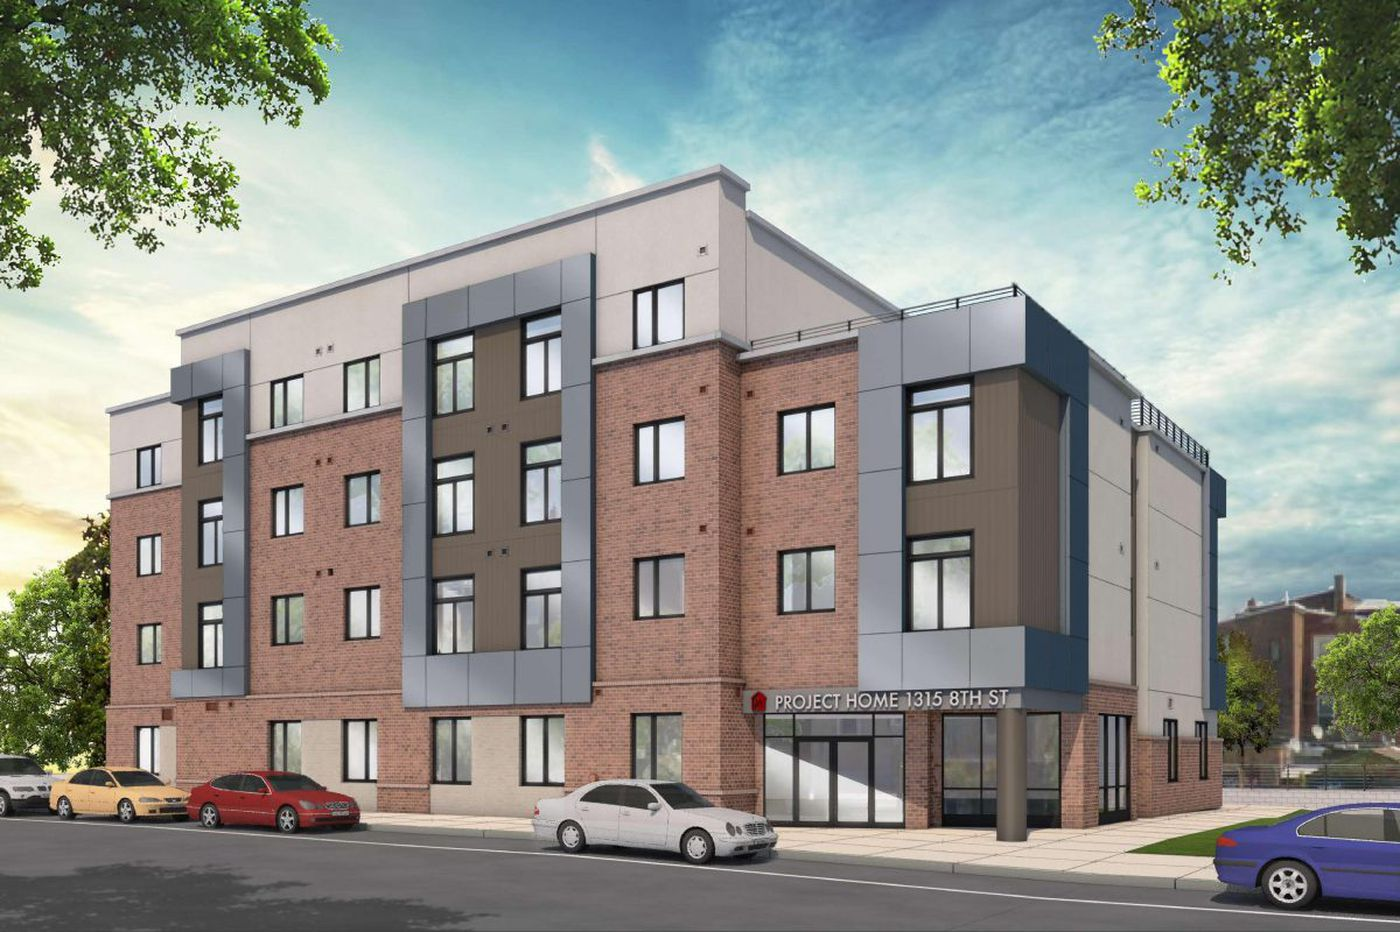 Project Home's LGBTQ housing plan dealt a blow in bankruptcy court